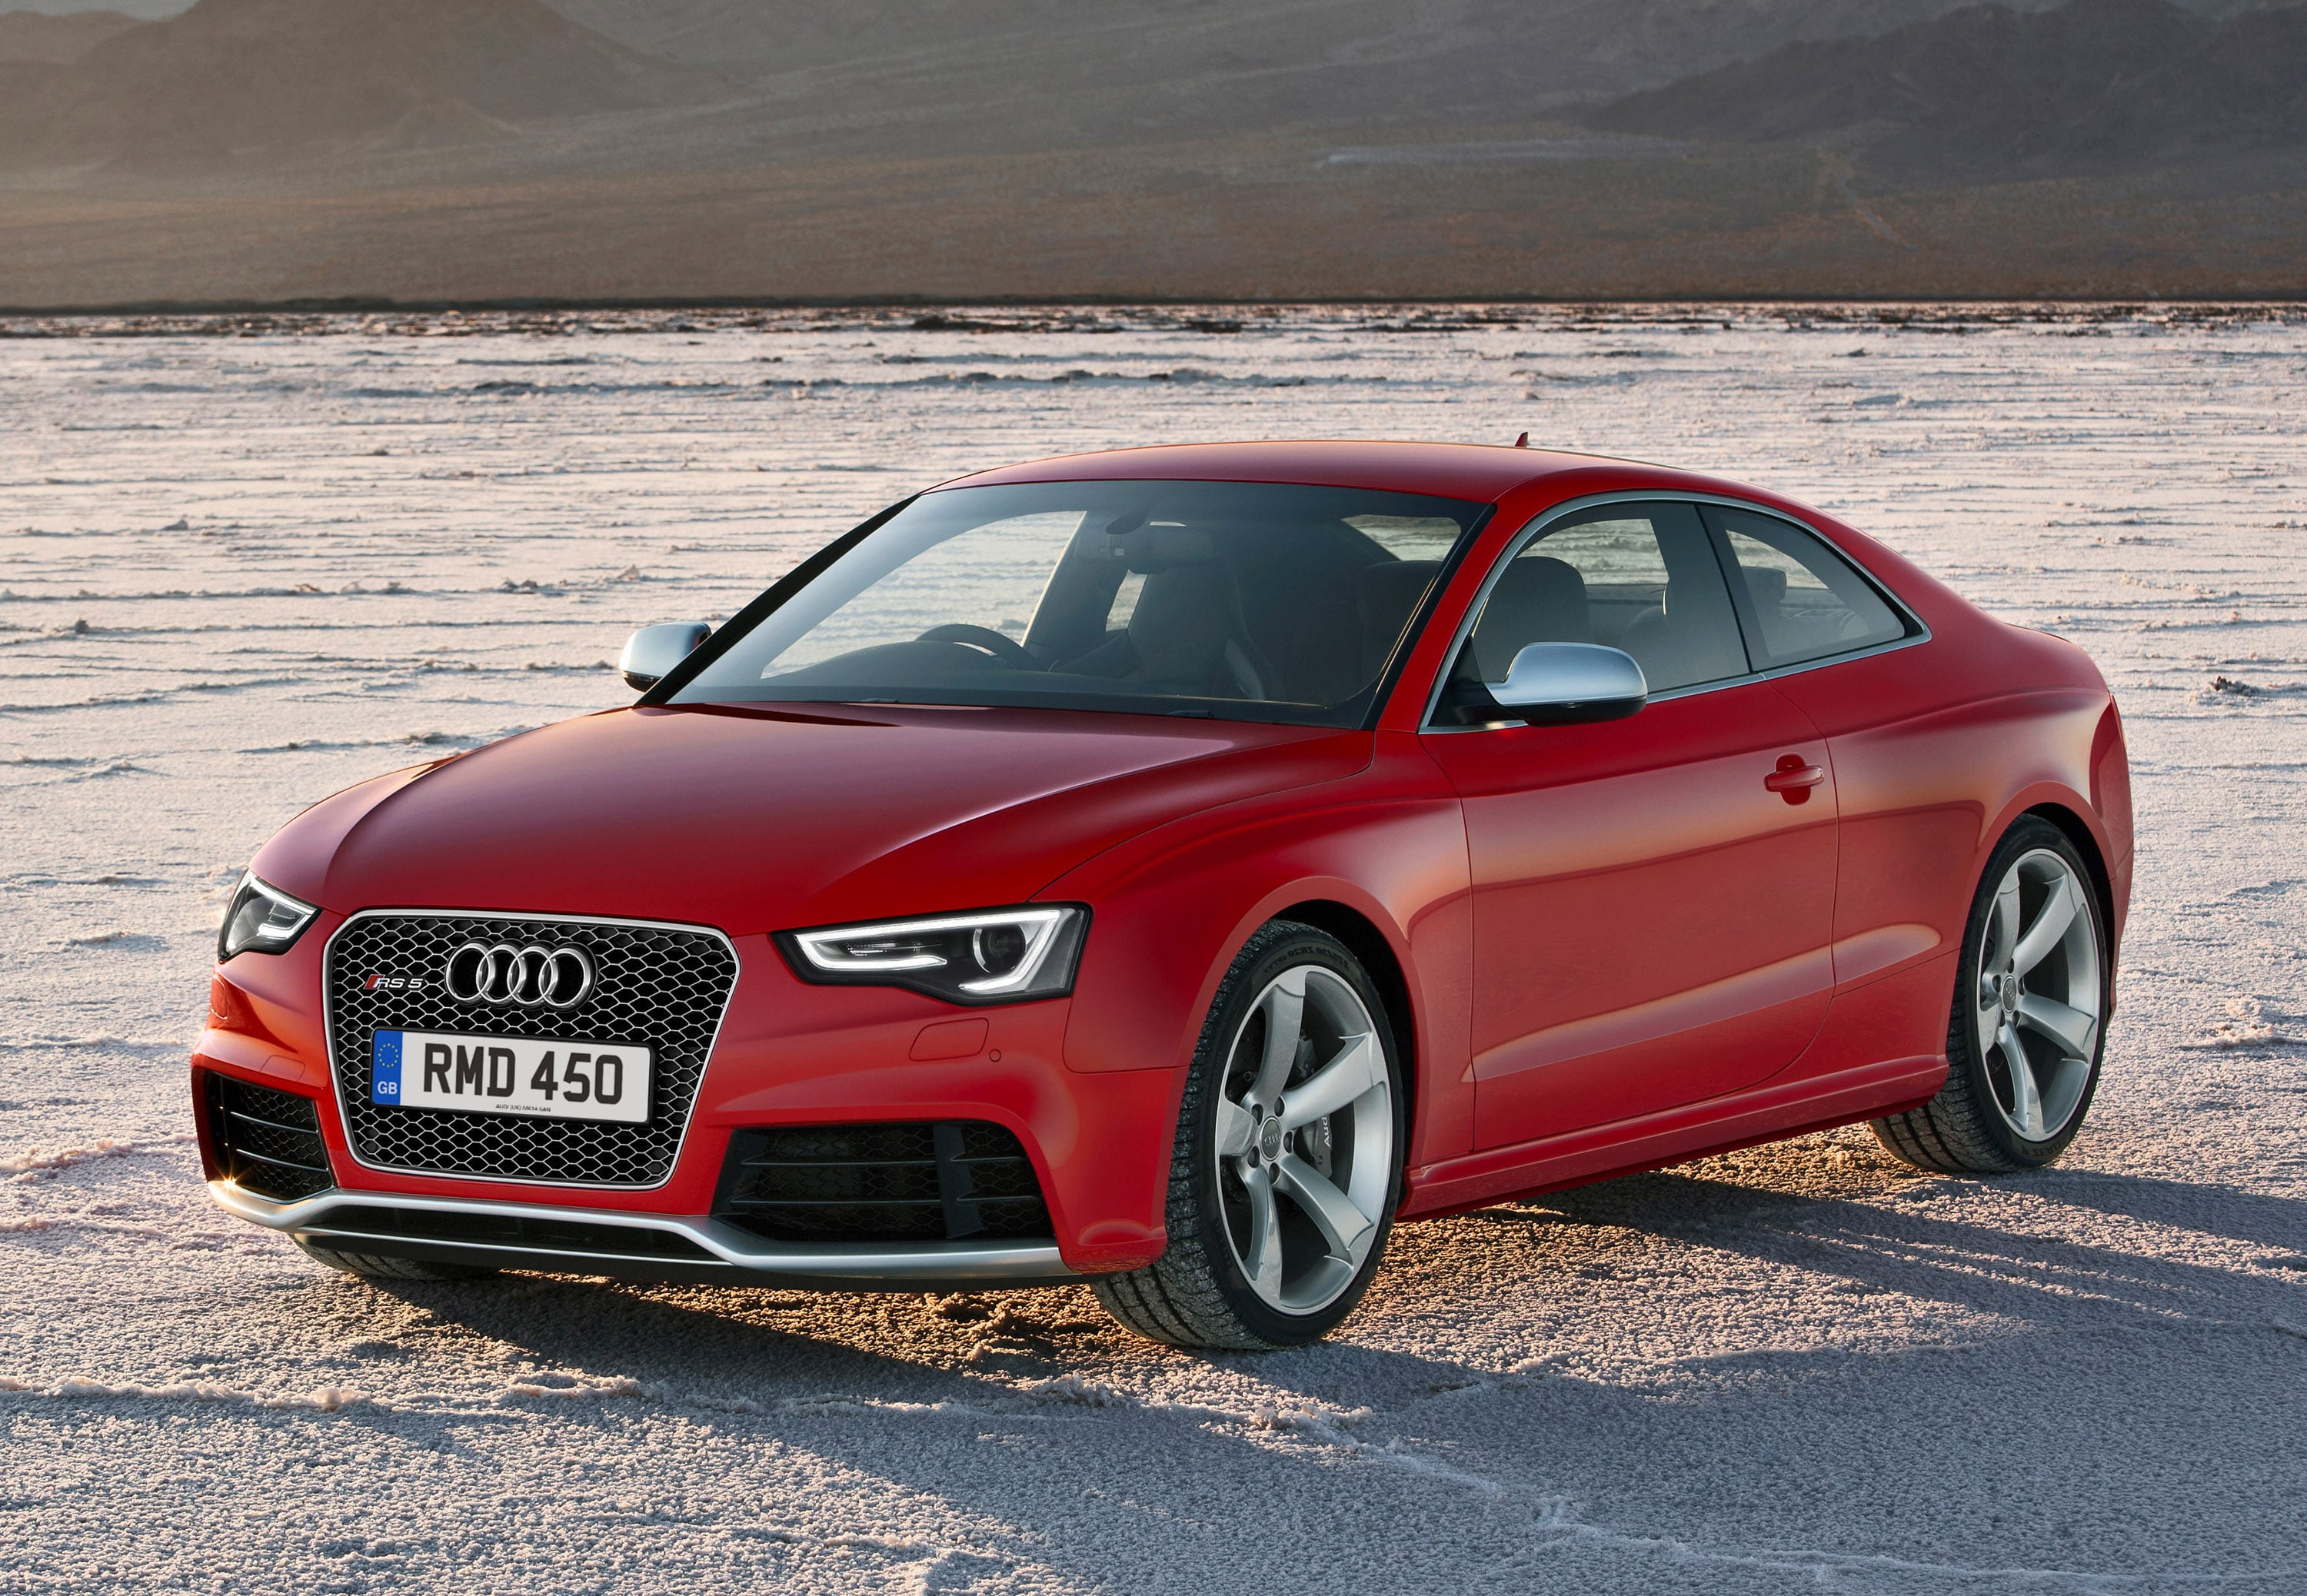 2012 Audi RS5 widescreen wallpapers